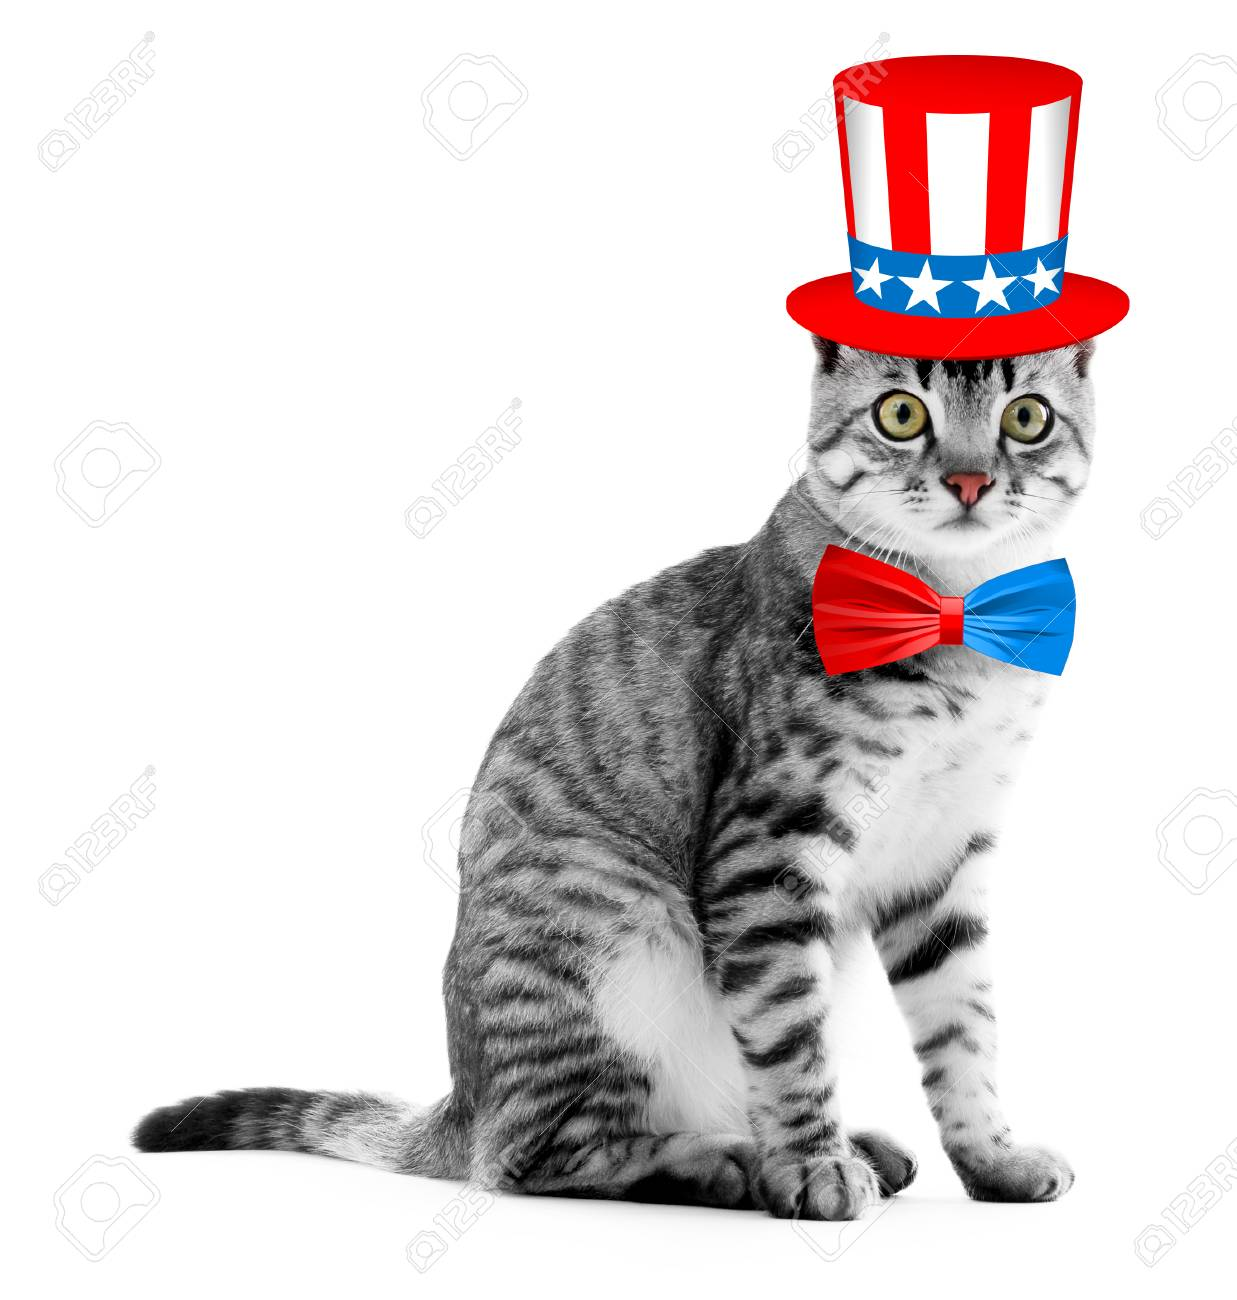 Cute Cat With Uncle Sam Hat And Bow Tie On White Background